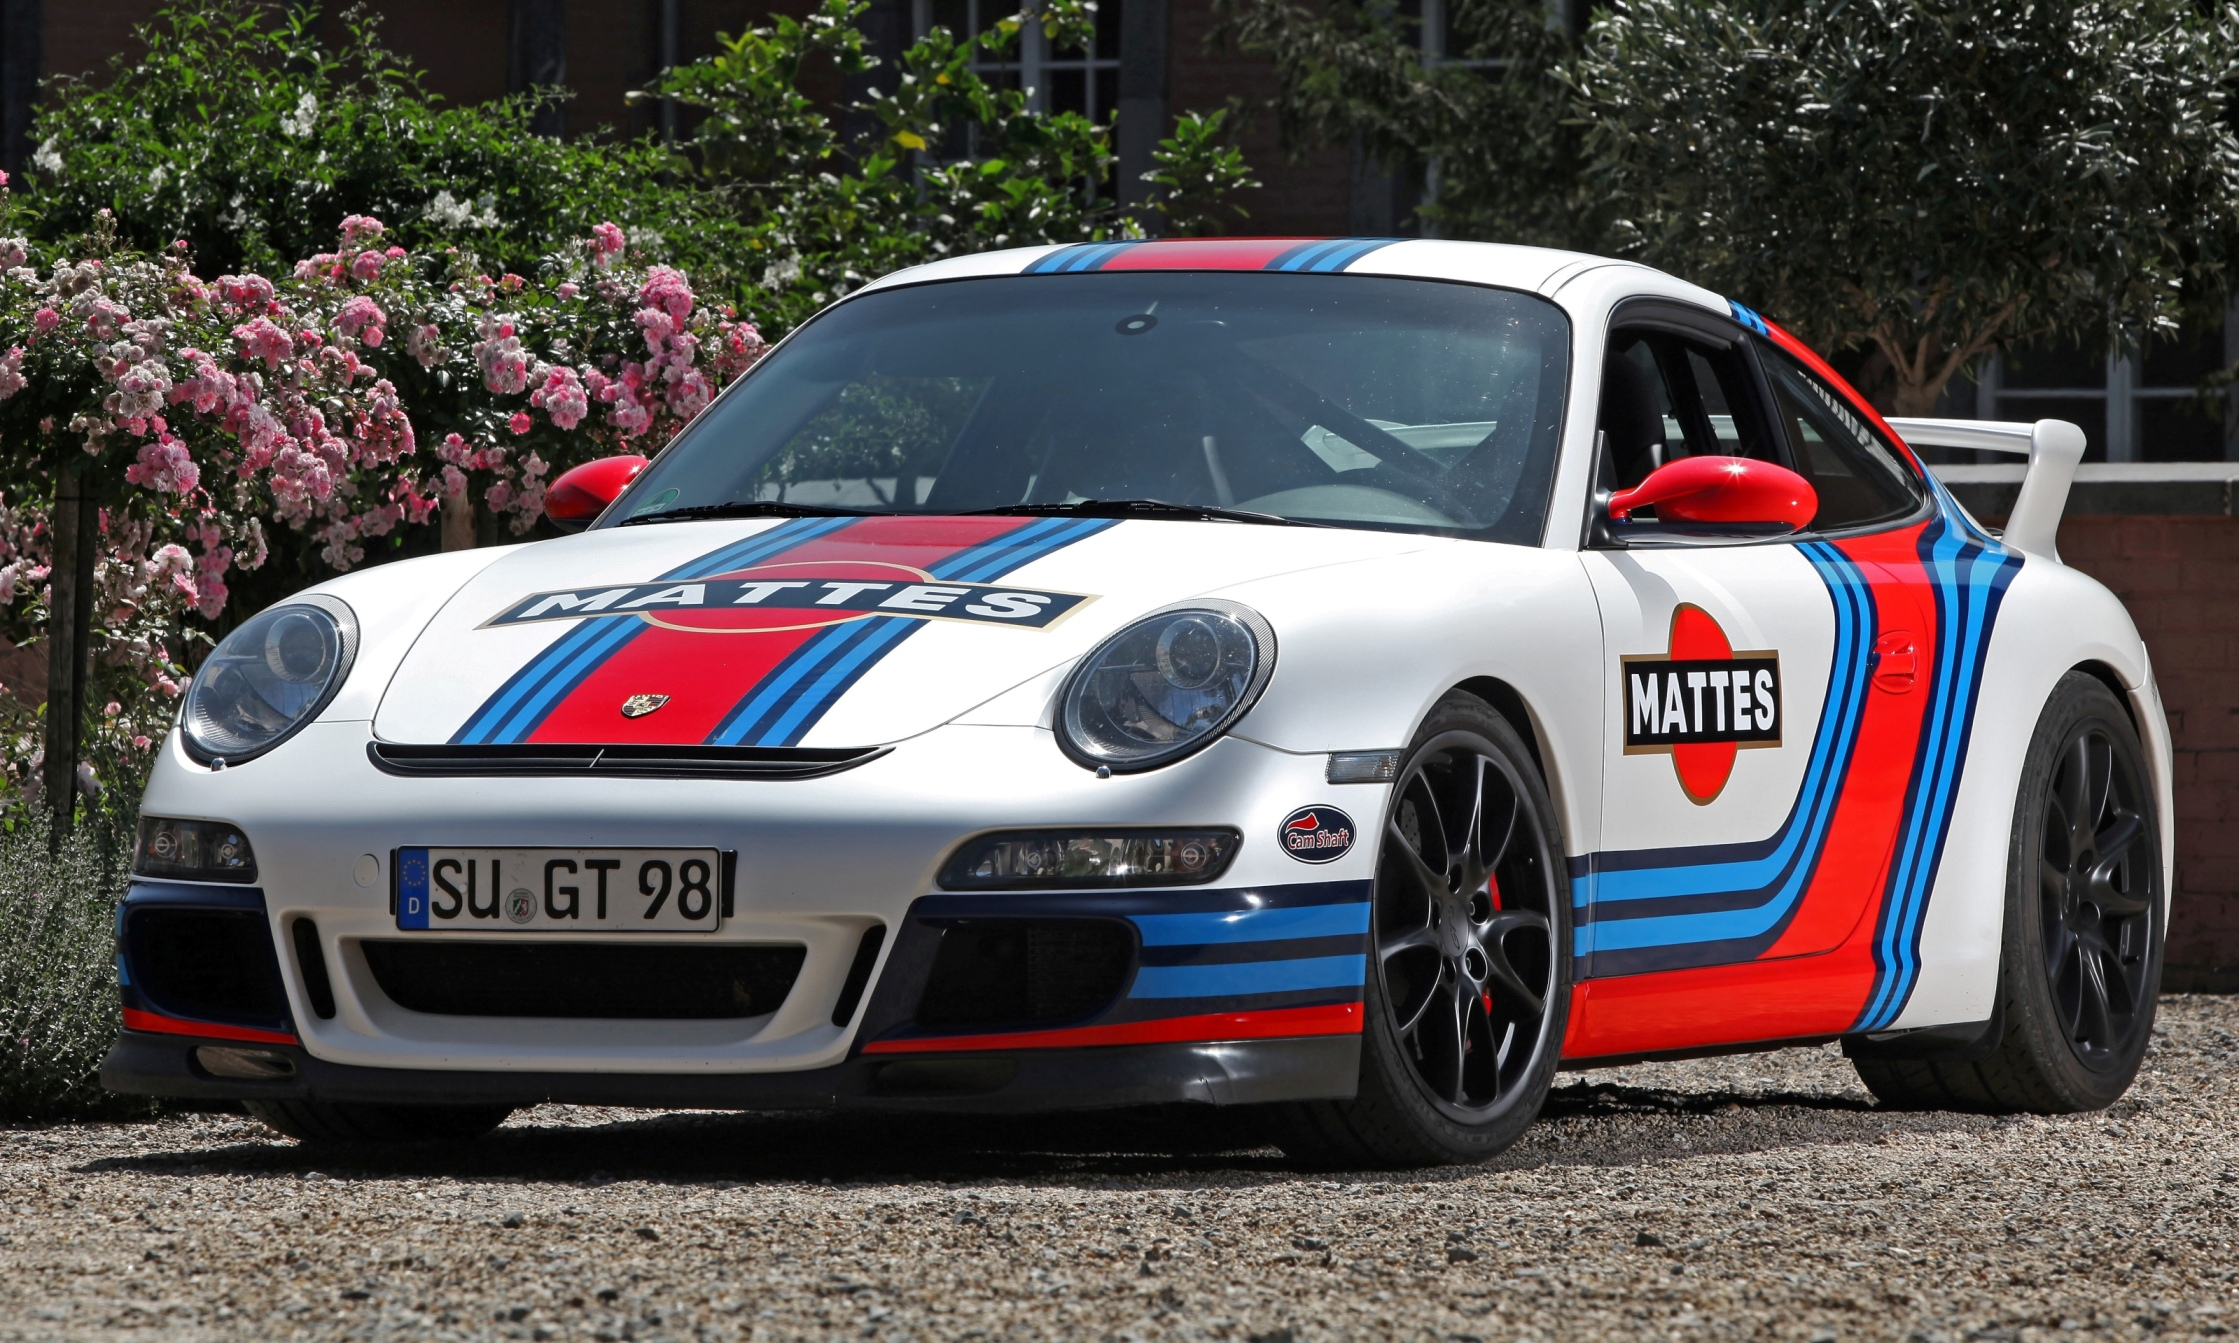 Germany Is Mad For Car Wraps Martini Style Racing Livery By Cam